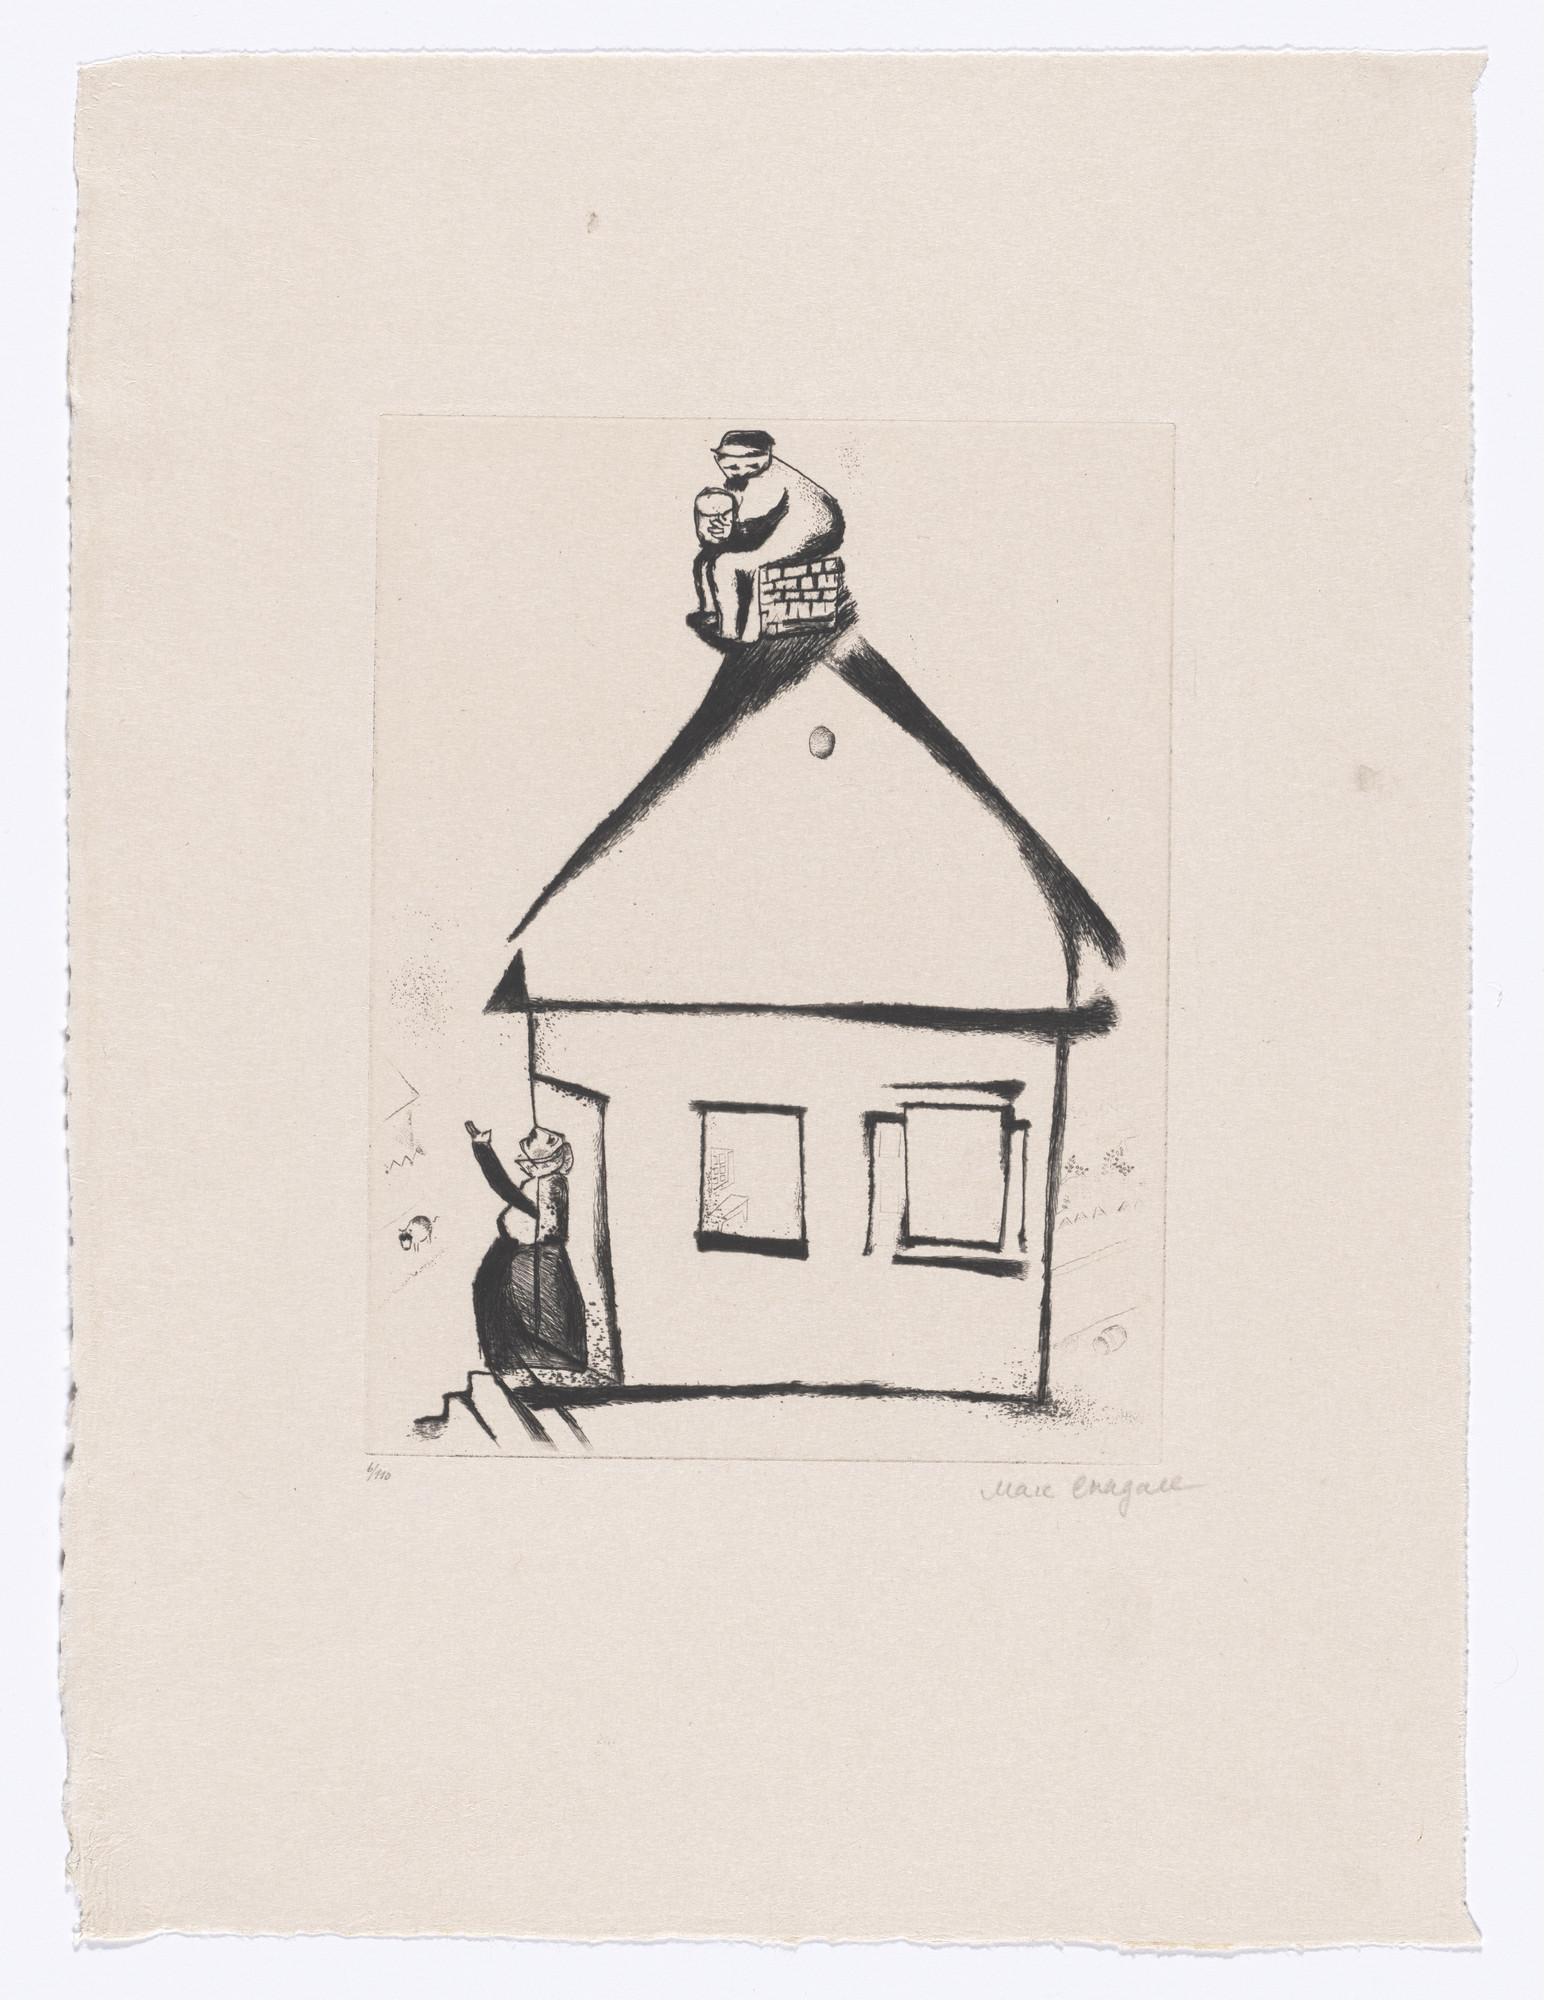 Marc Chagall. Grandfather's House (Haus des Grossvaters) from My Life ((Mein Leben). 1922, published 1923